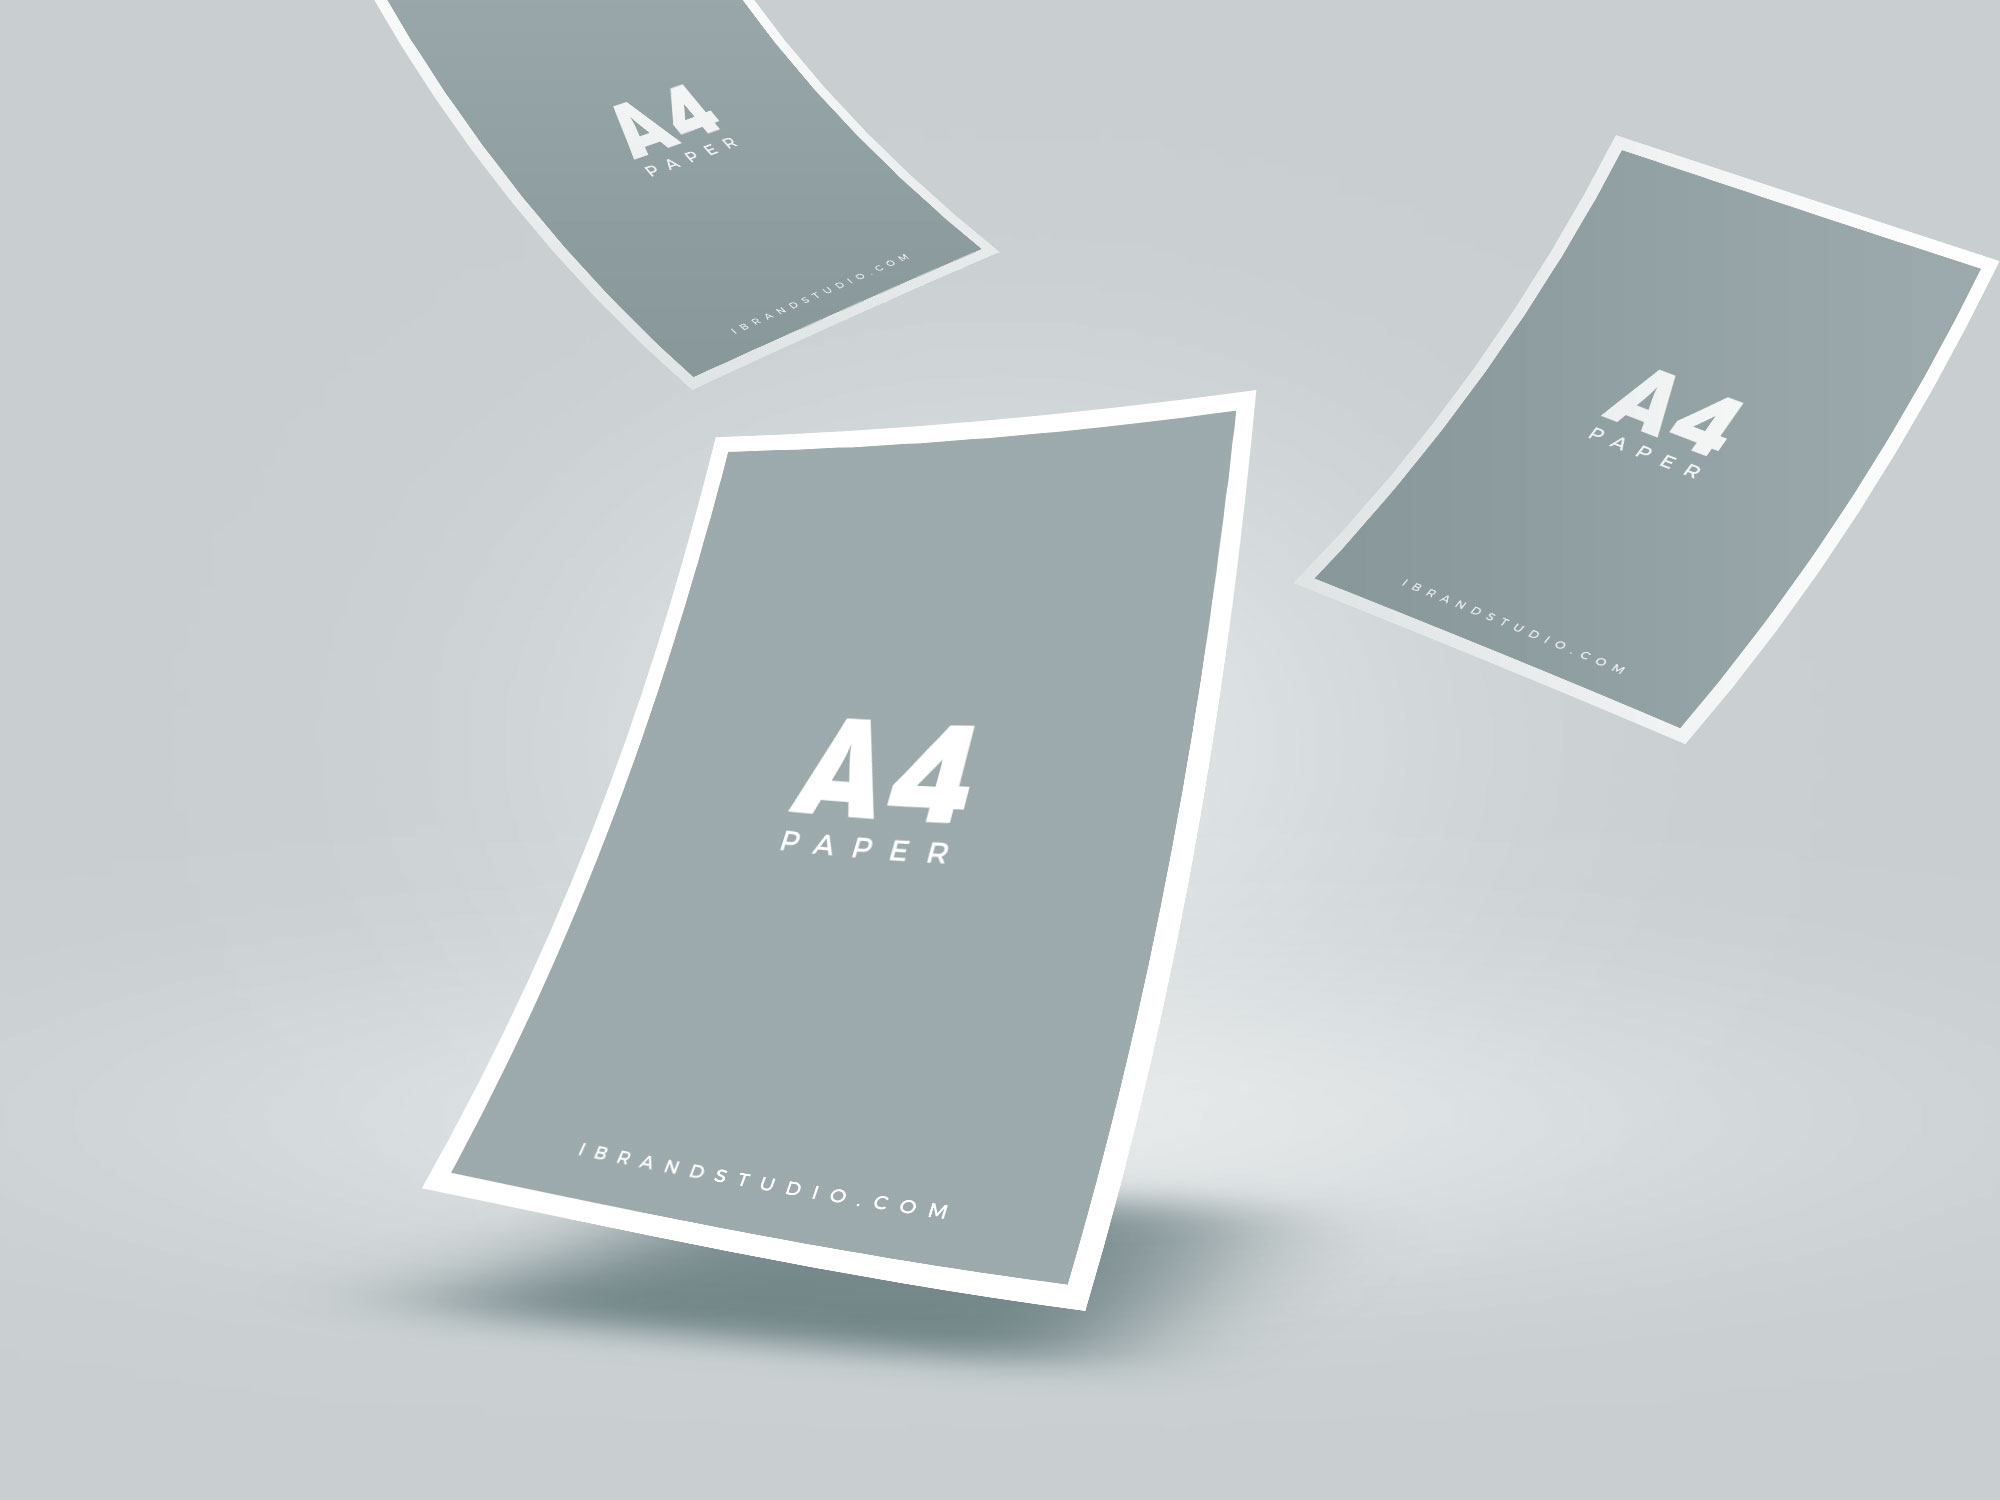 Free-Floating-A4-Paper-Mockup-01